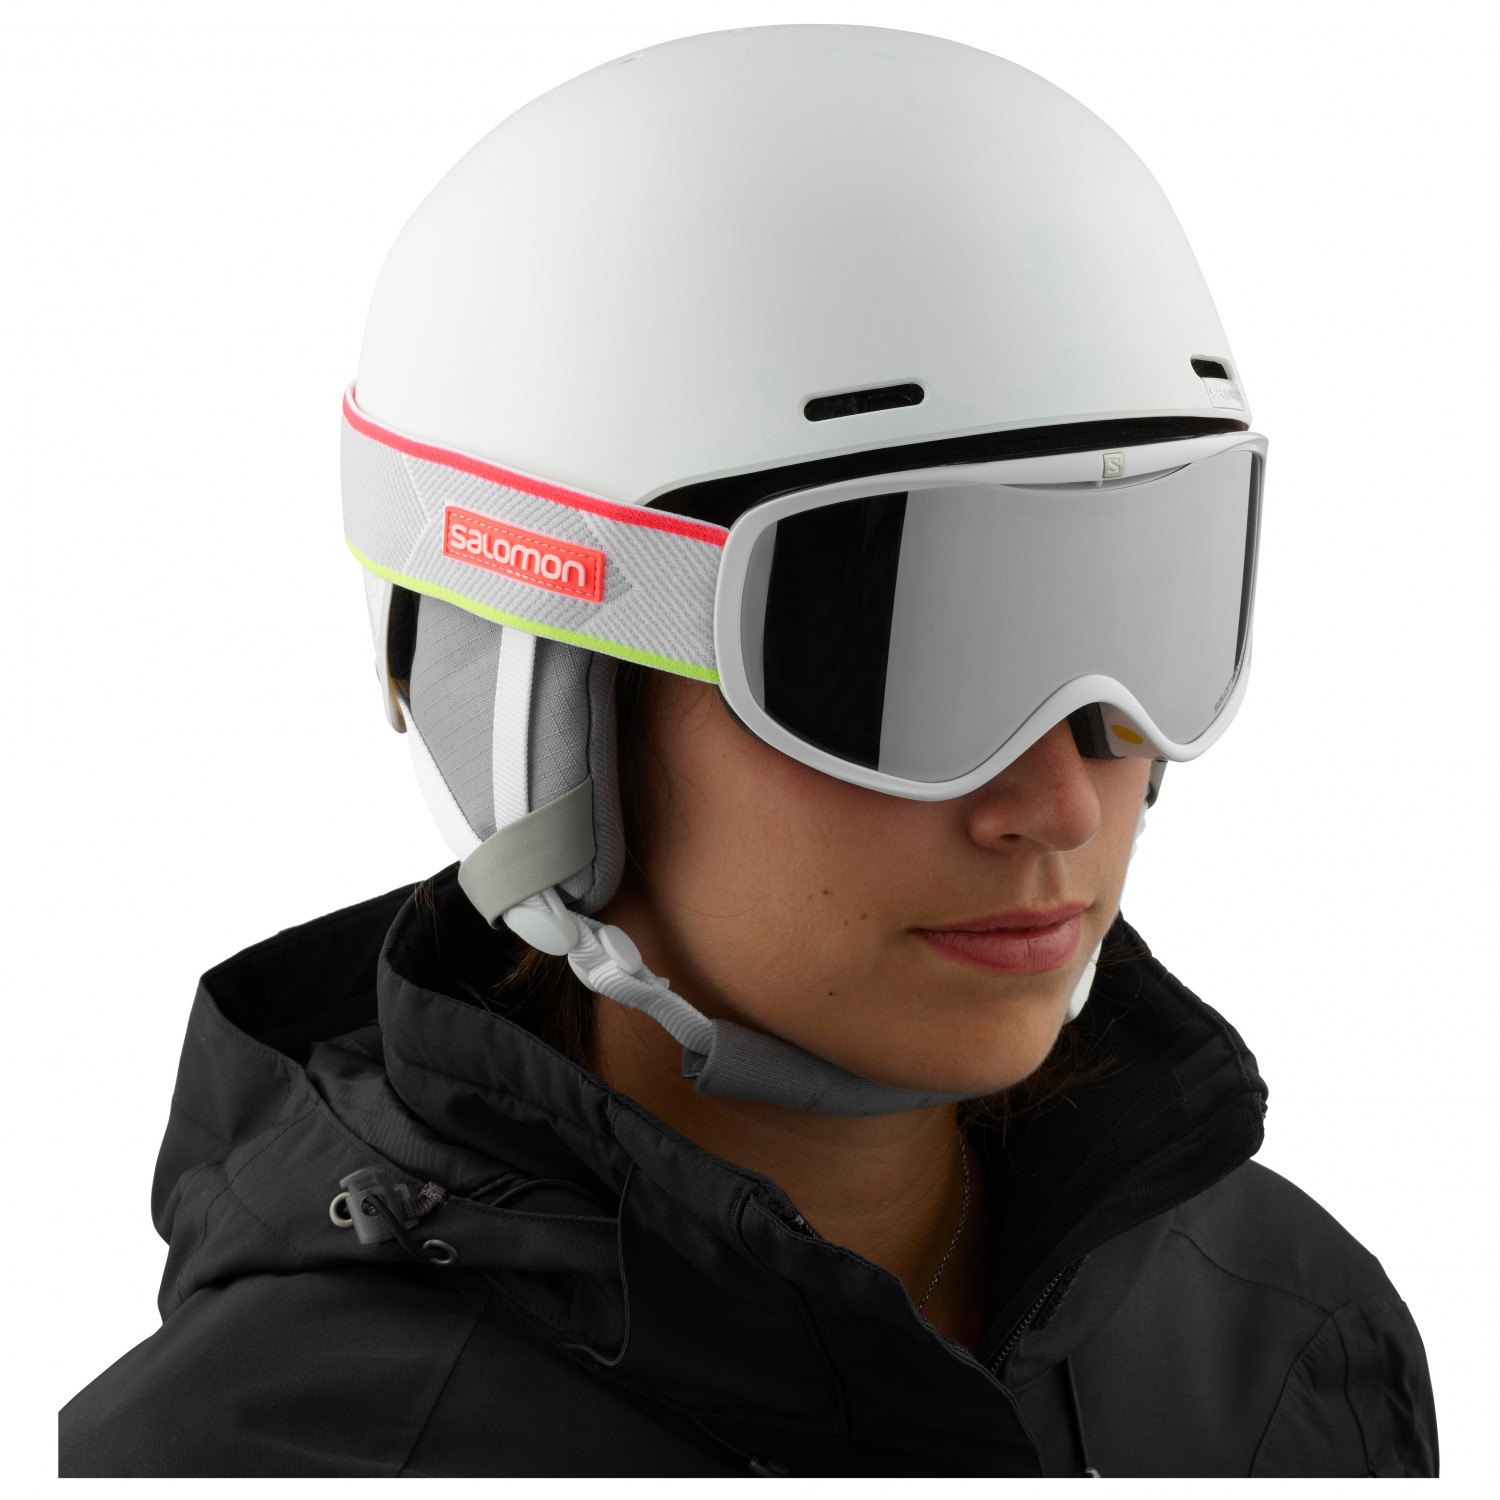 Salomon Women's Spell Skihelm White | S 53 56 cm jkd7k